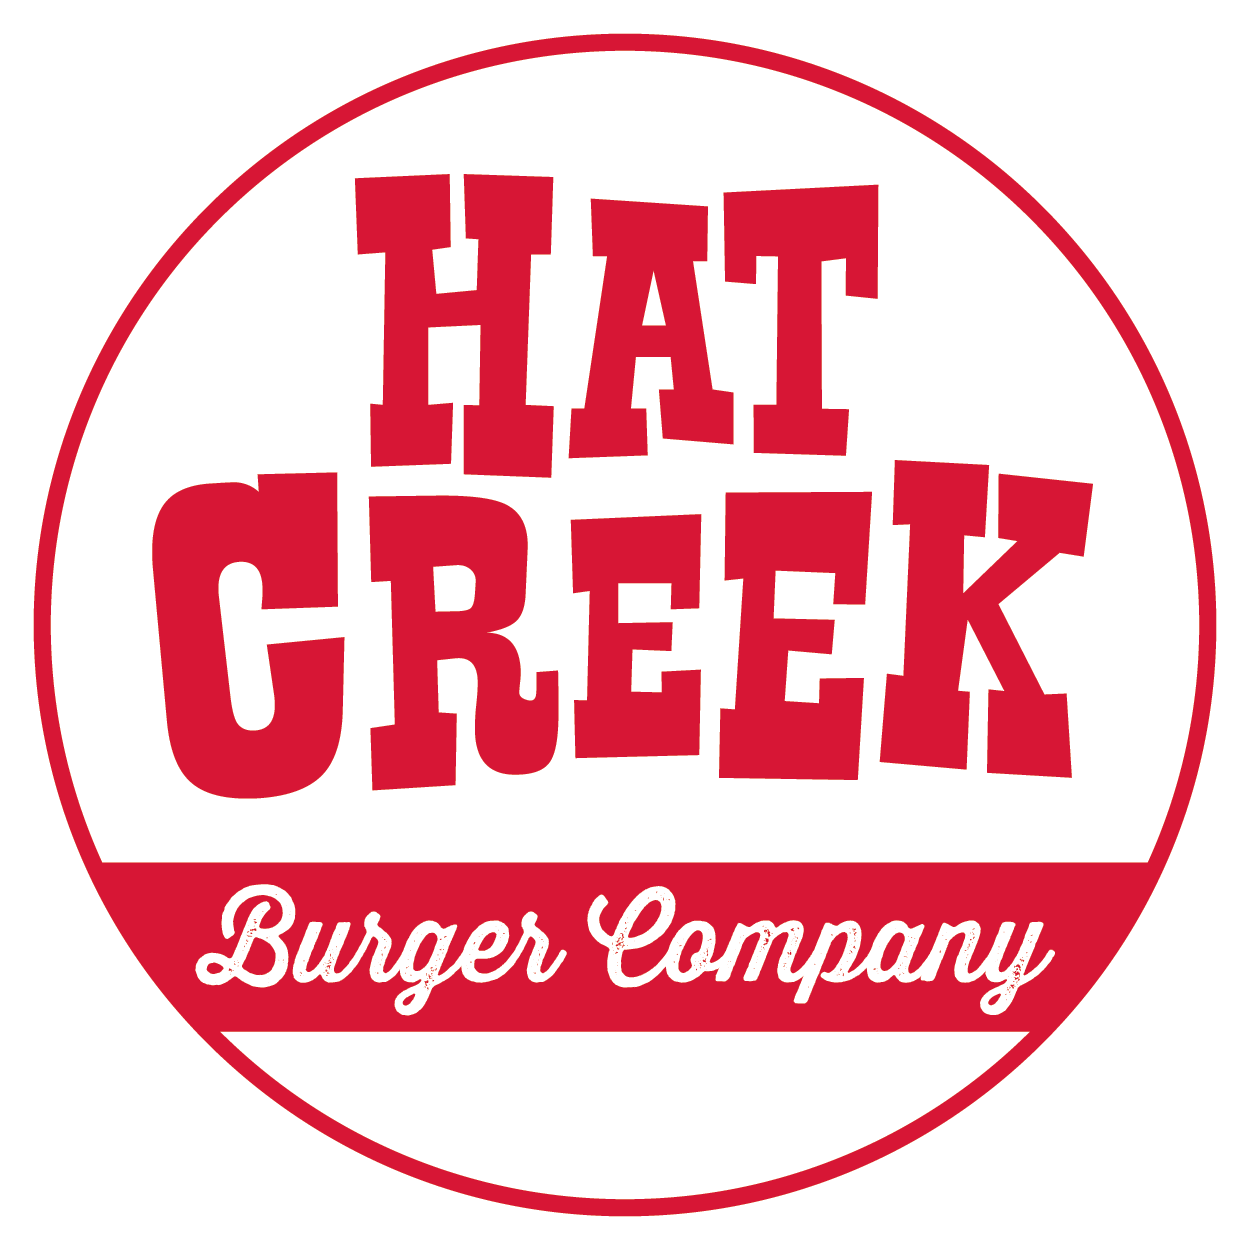 Georgetown Hat Creek Burger Company Burger Company Area For Kids Georgetown